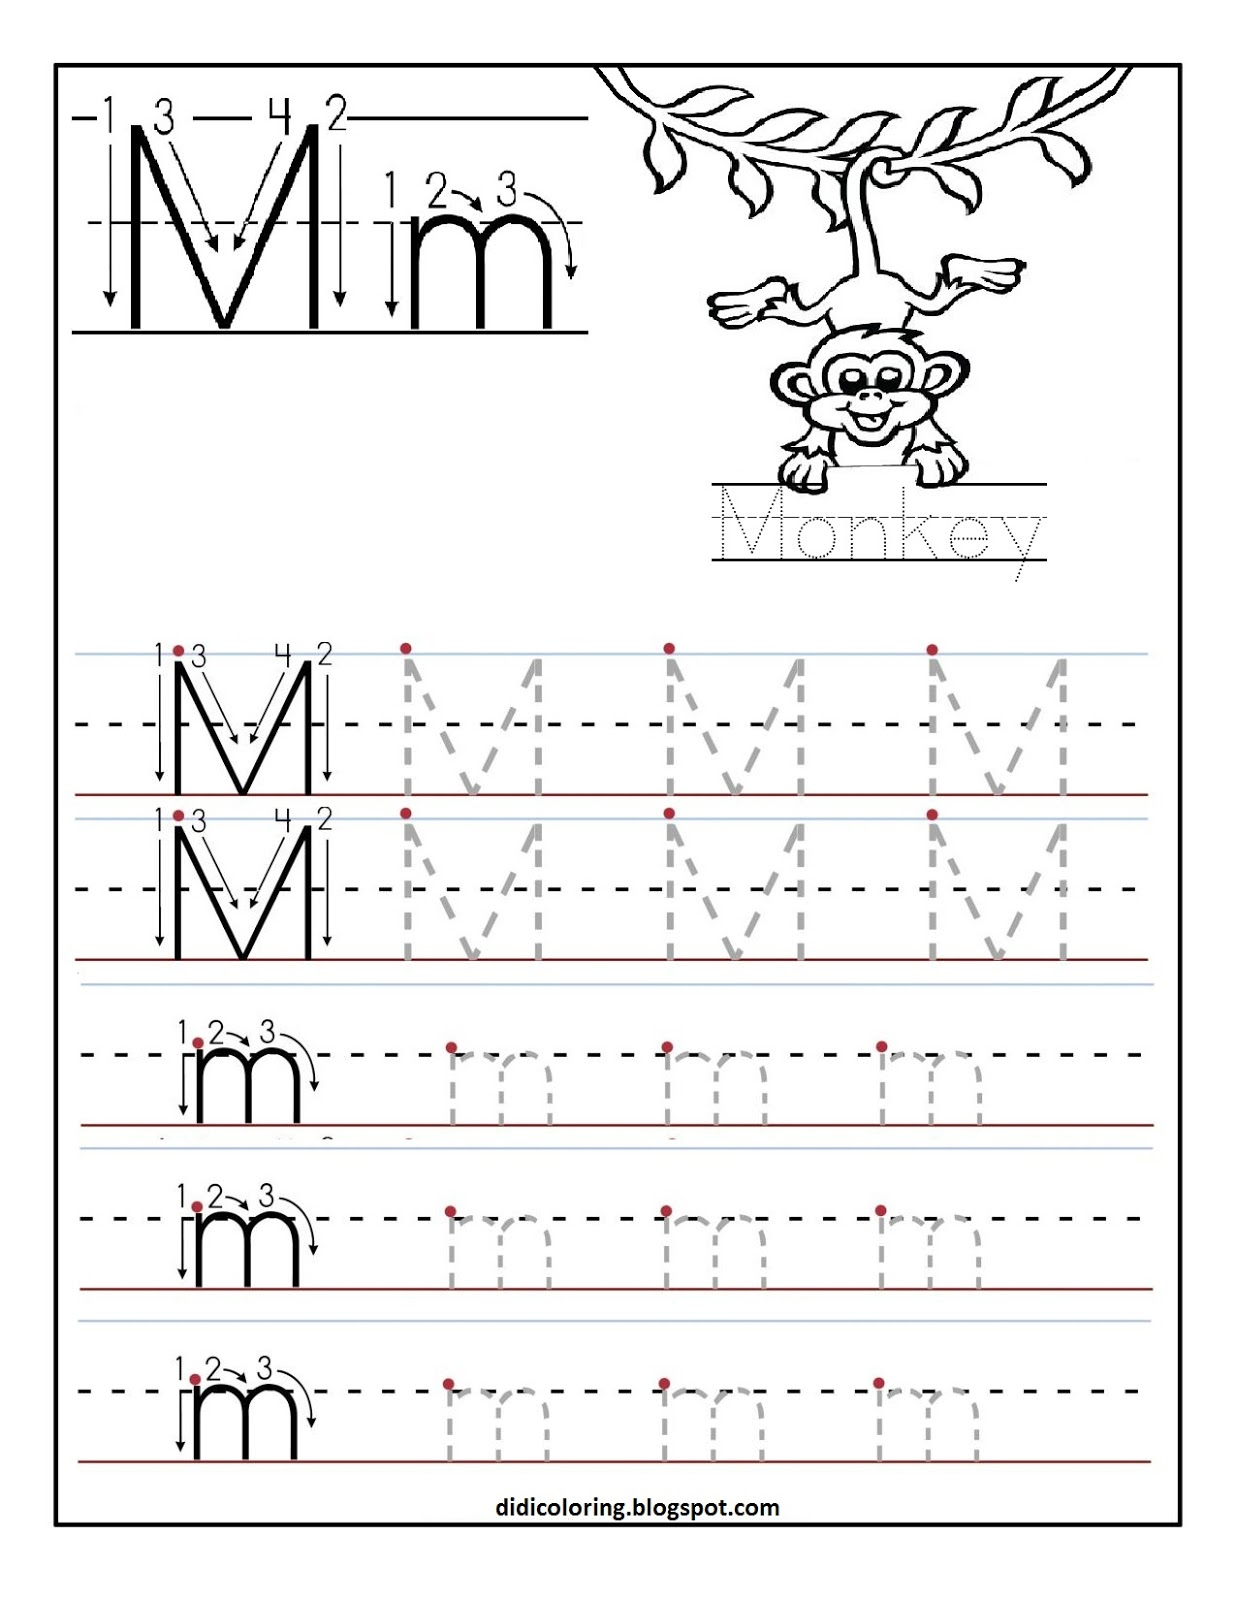 Didi coloring Page: Free printable worksheet letter M for your